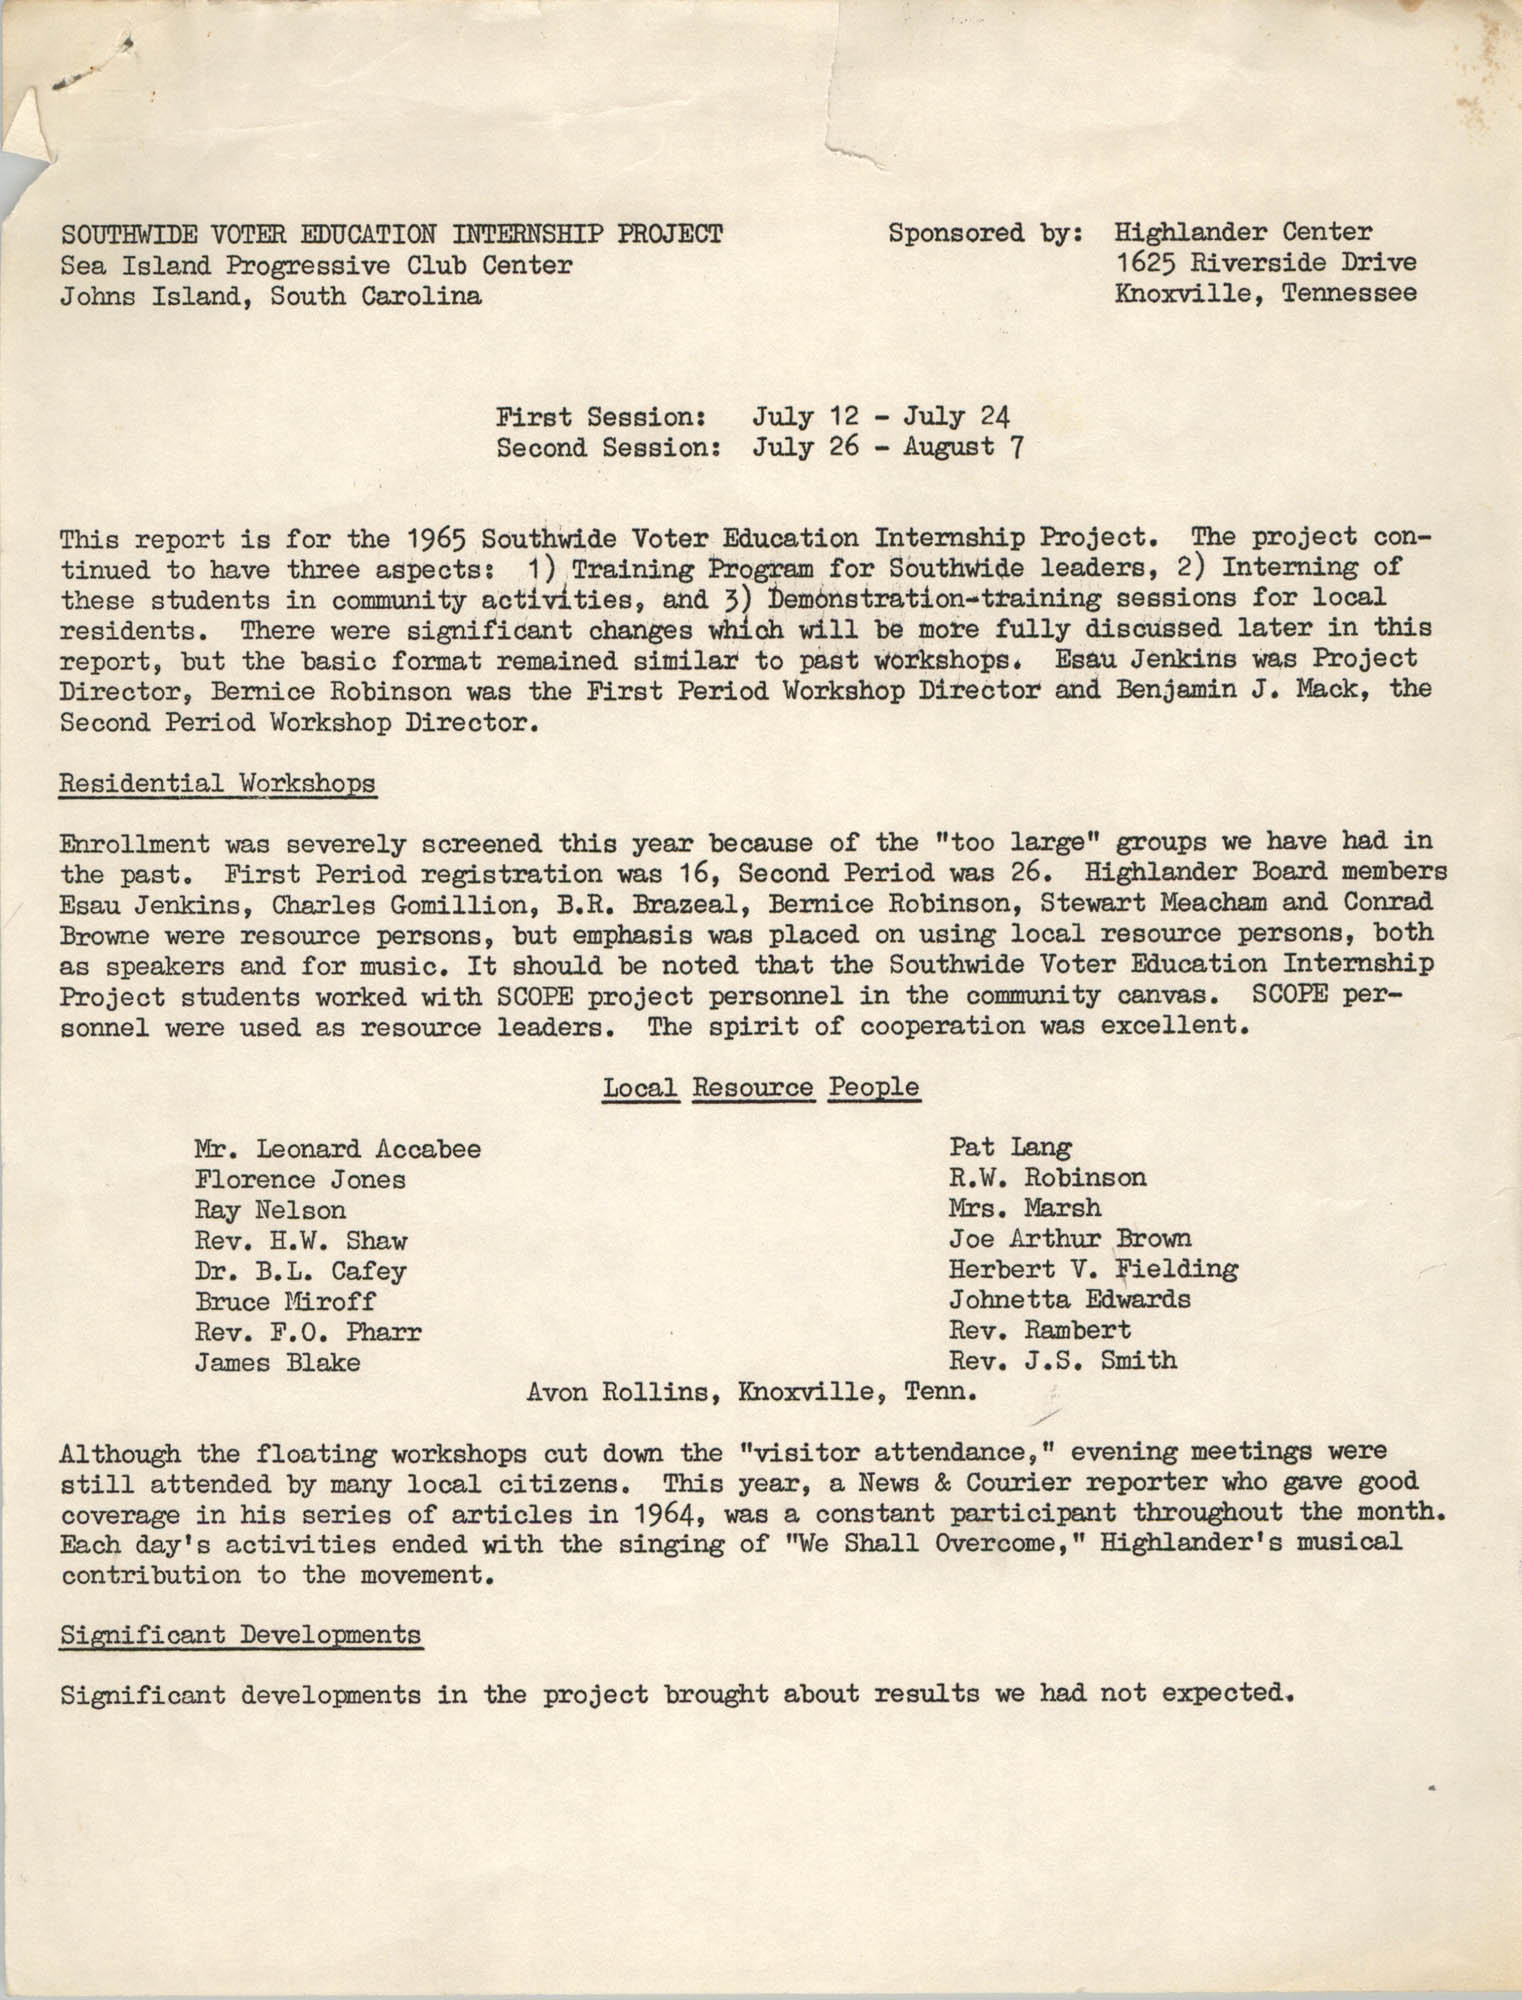 1965 Southwide Voter Education Internship Project Workshop Report and Program